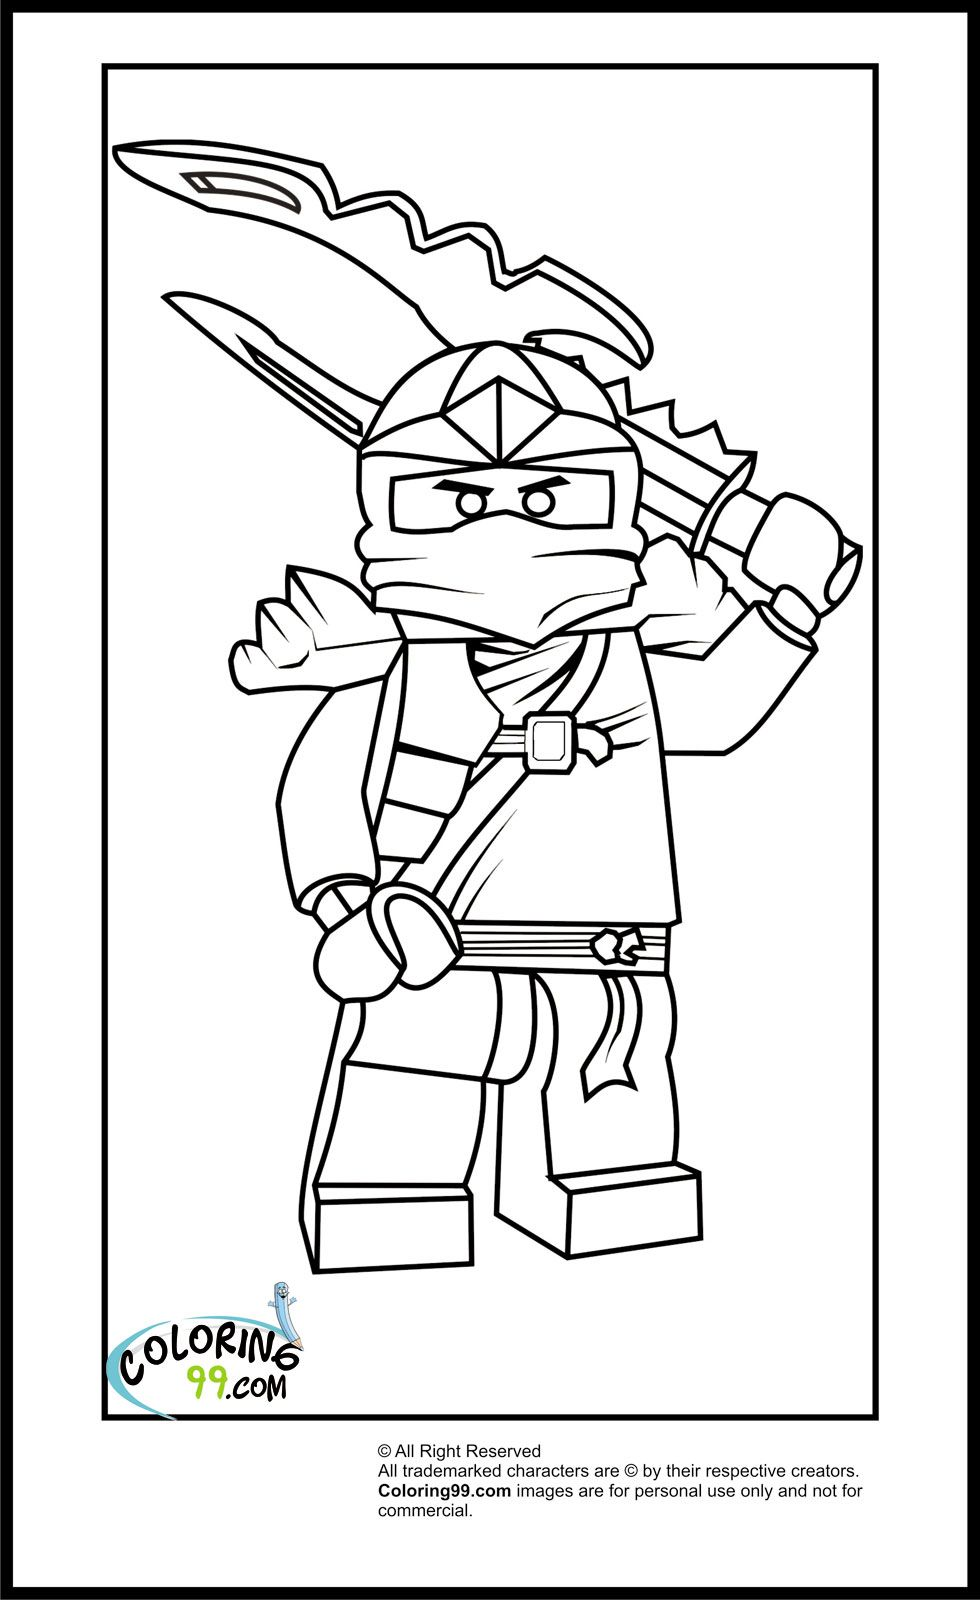 Lego Ninjago Coloring Pages Free Printable Pictures Coloring Lego Coloring Pages Ninjago Coloring Pages Lego Coloring